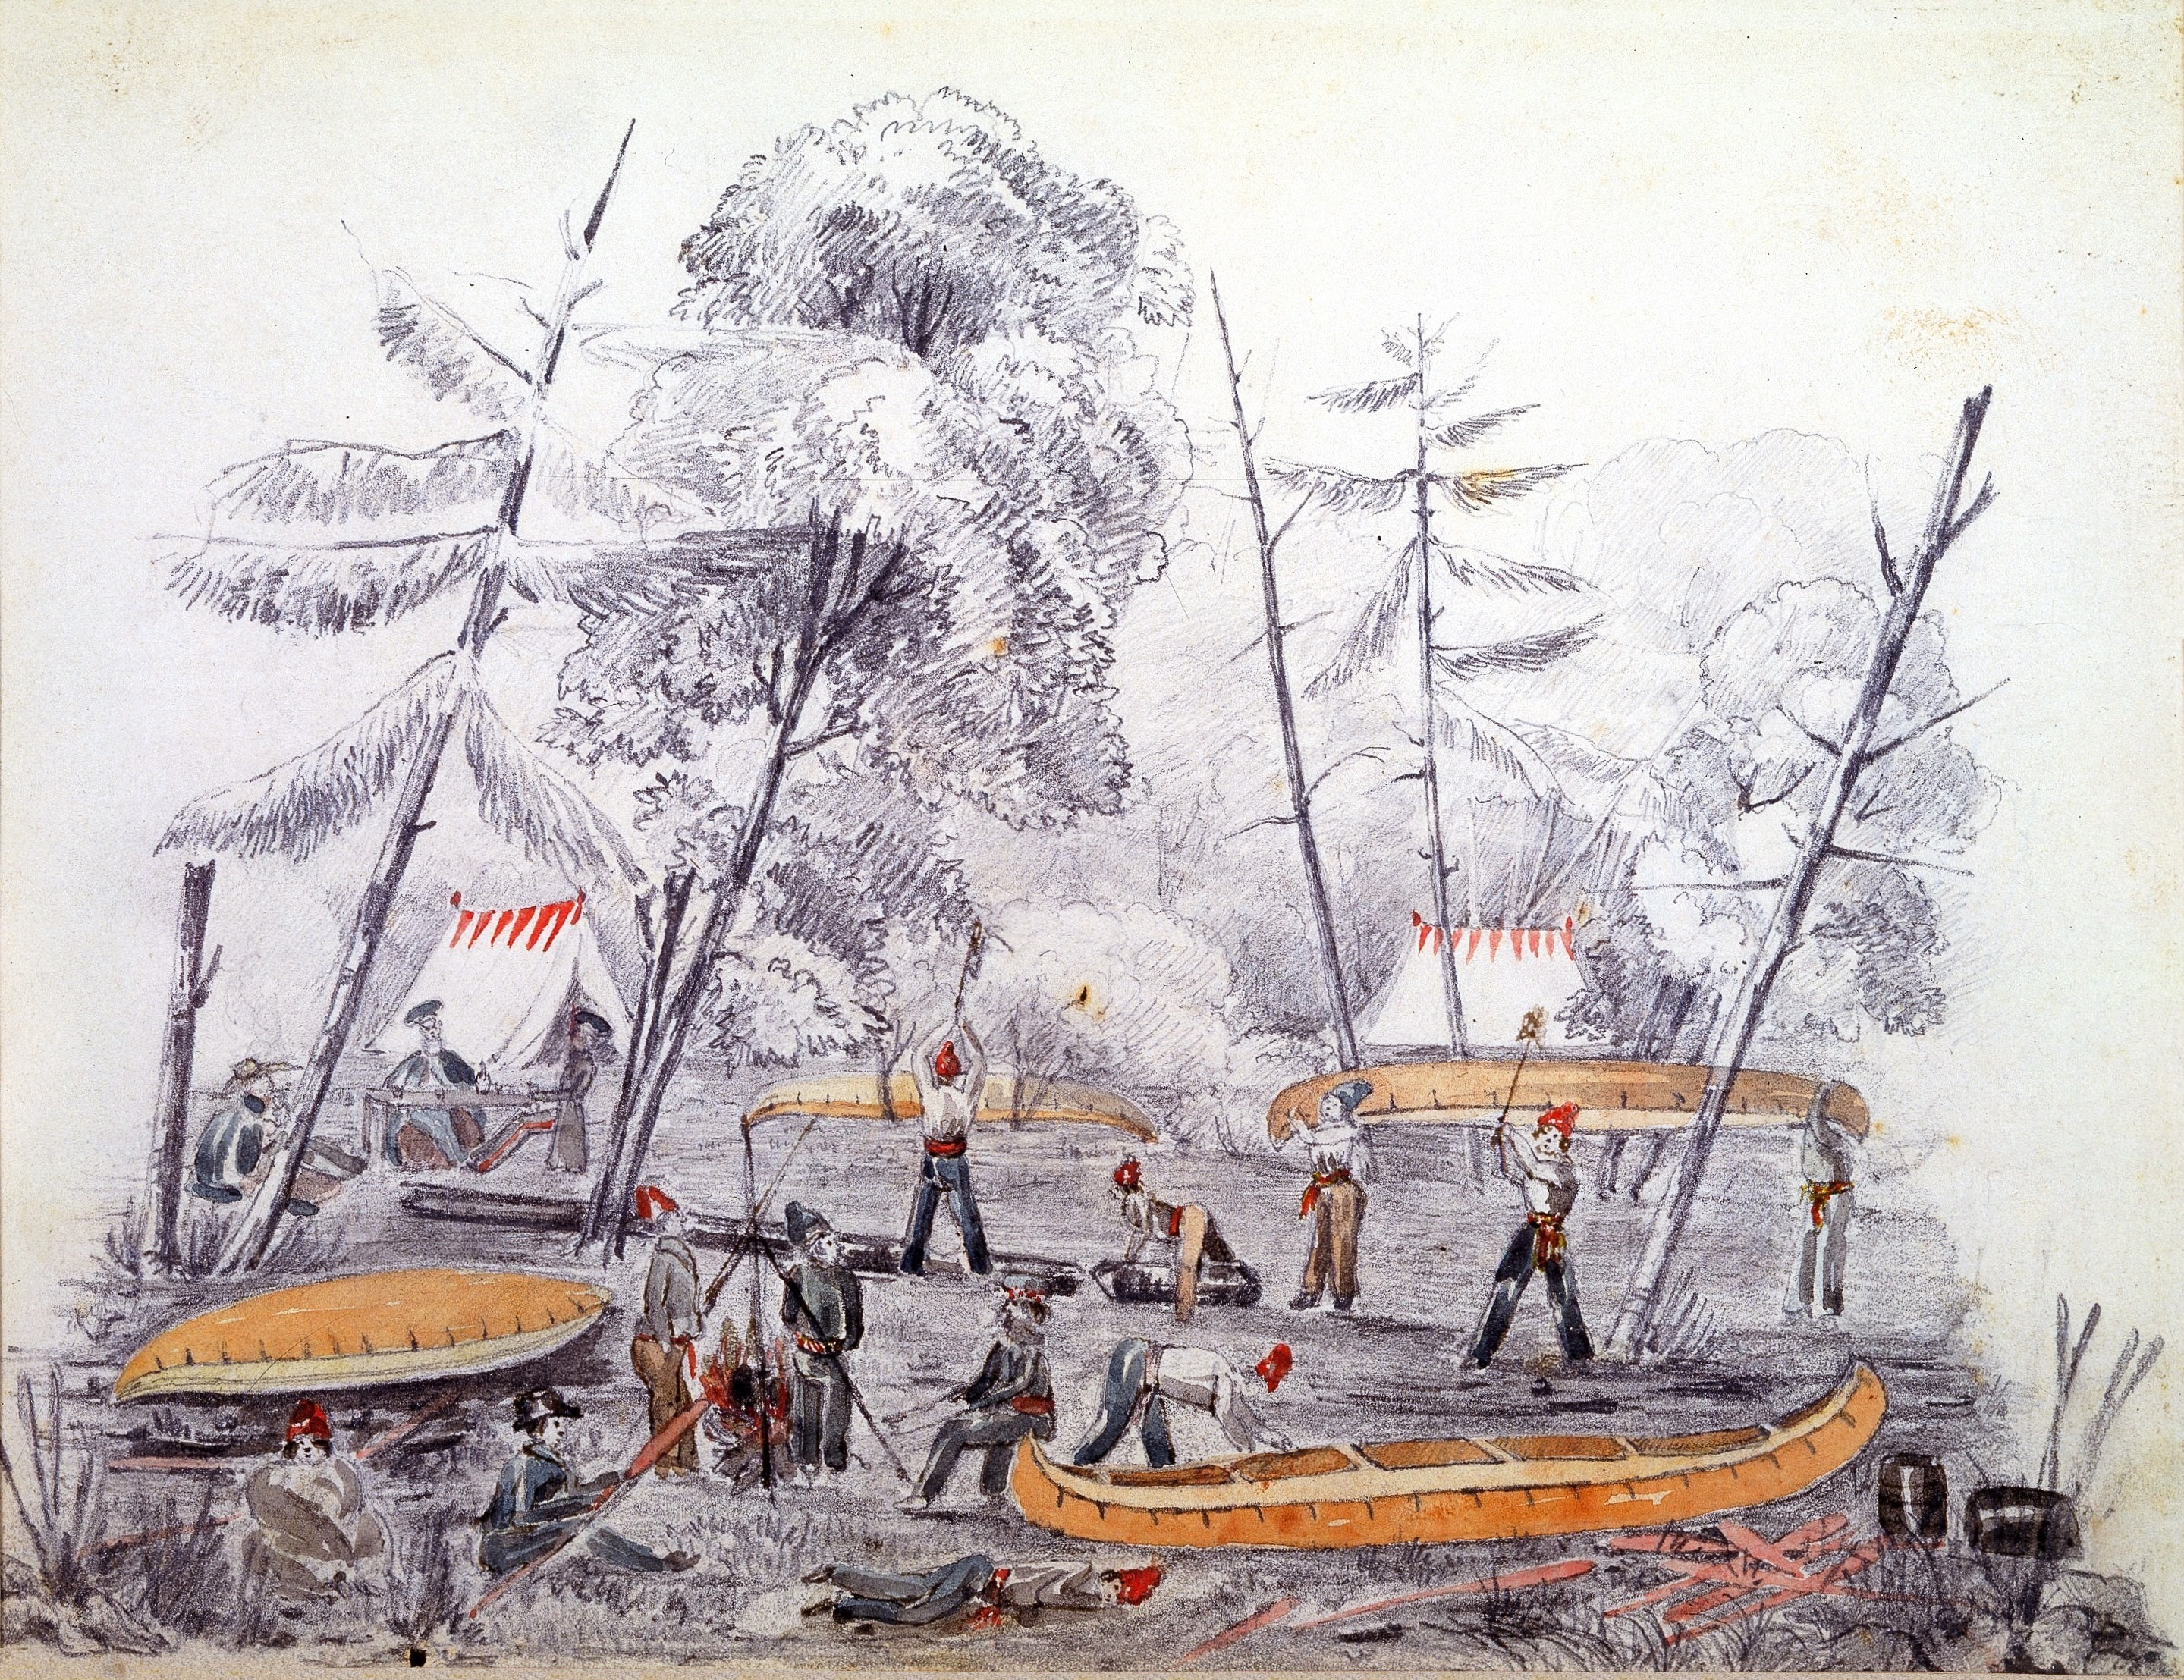 The first military camp set up on the south side of the Ottawa River in 1826. The camp was a waystation for soldiers and labourers of the Rideau Canal until a larger housing plan was created.